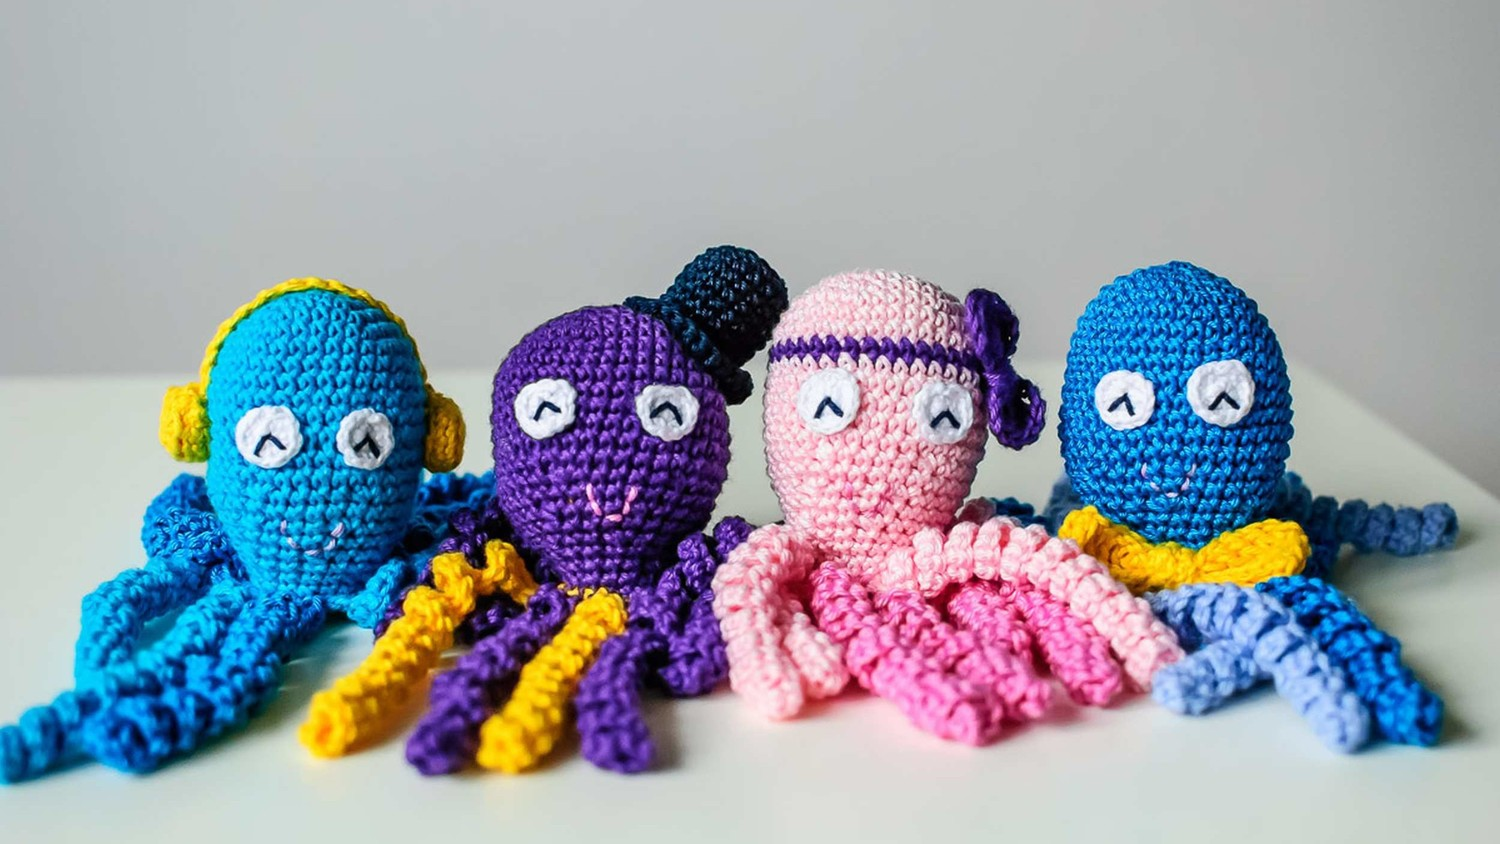 you can crochet an octopus toy to help comfort premature babies